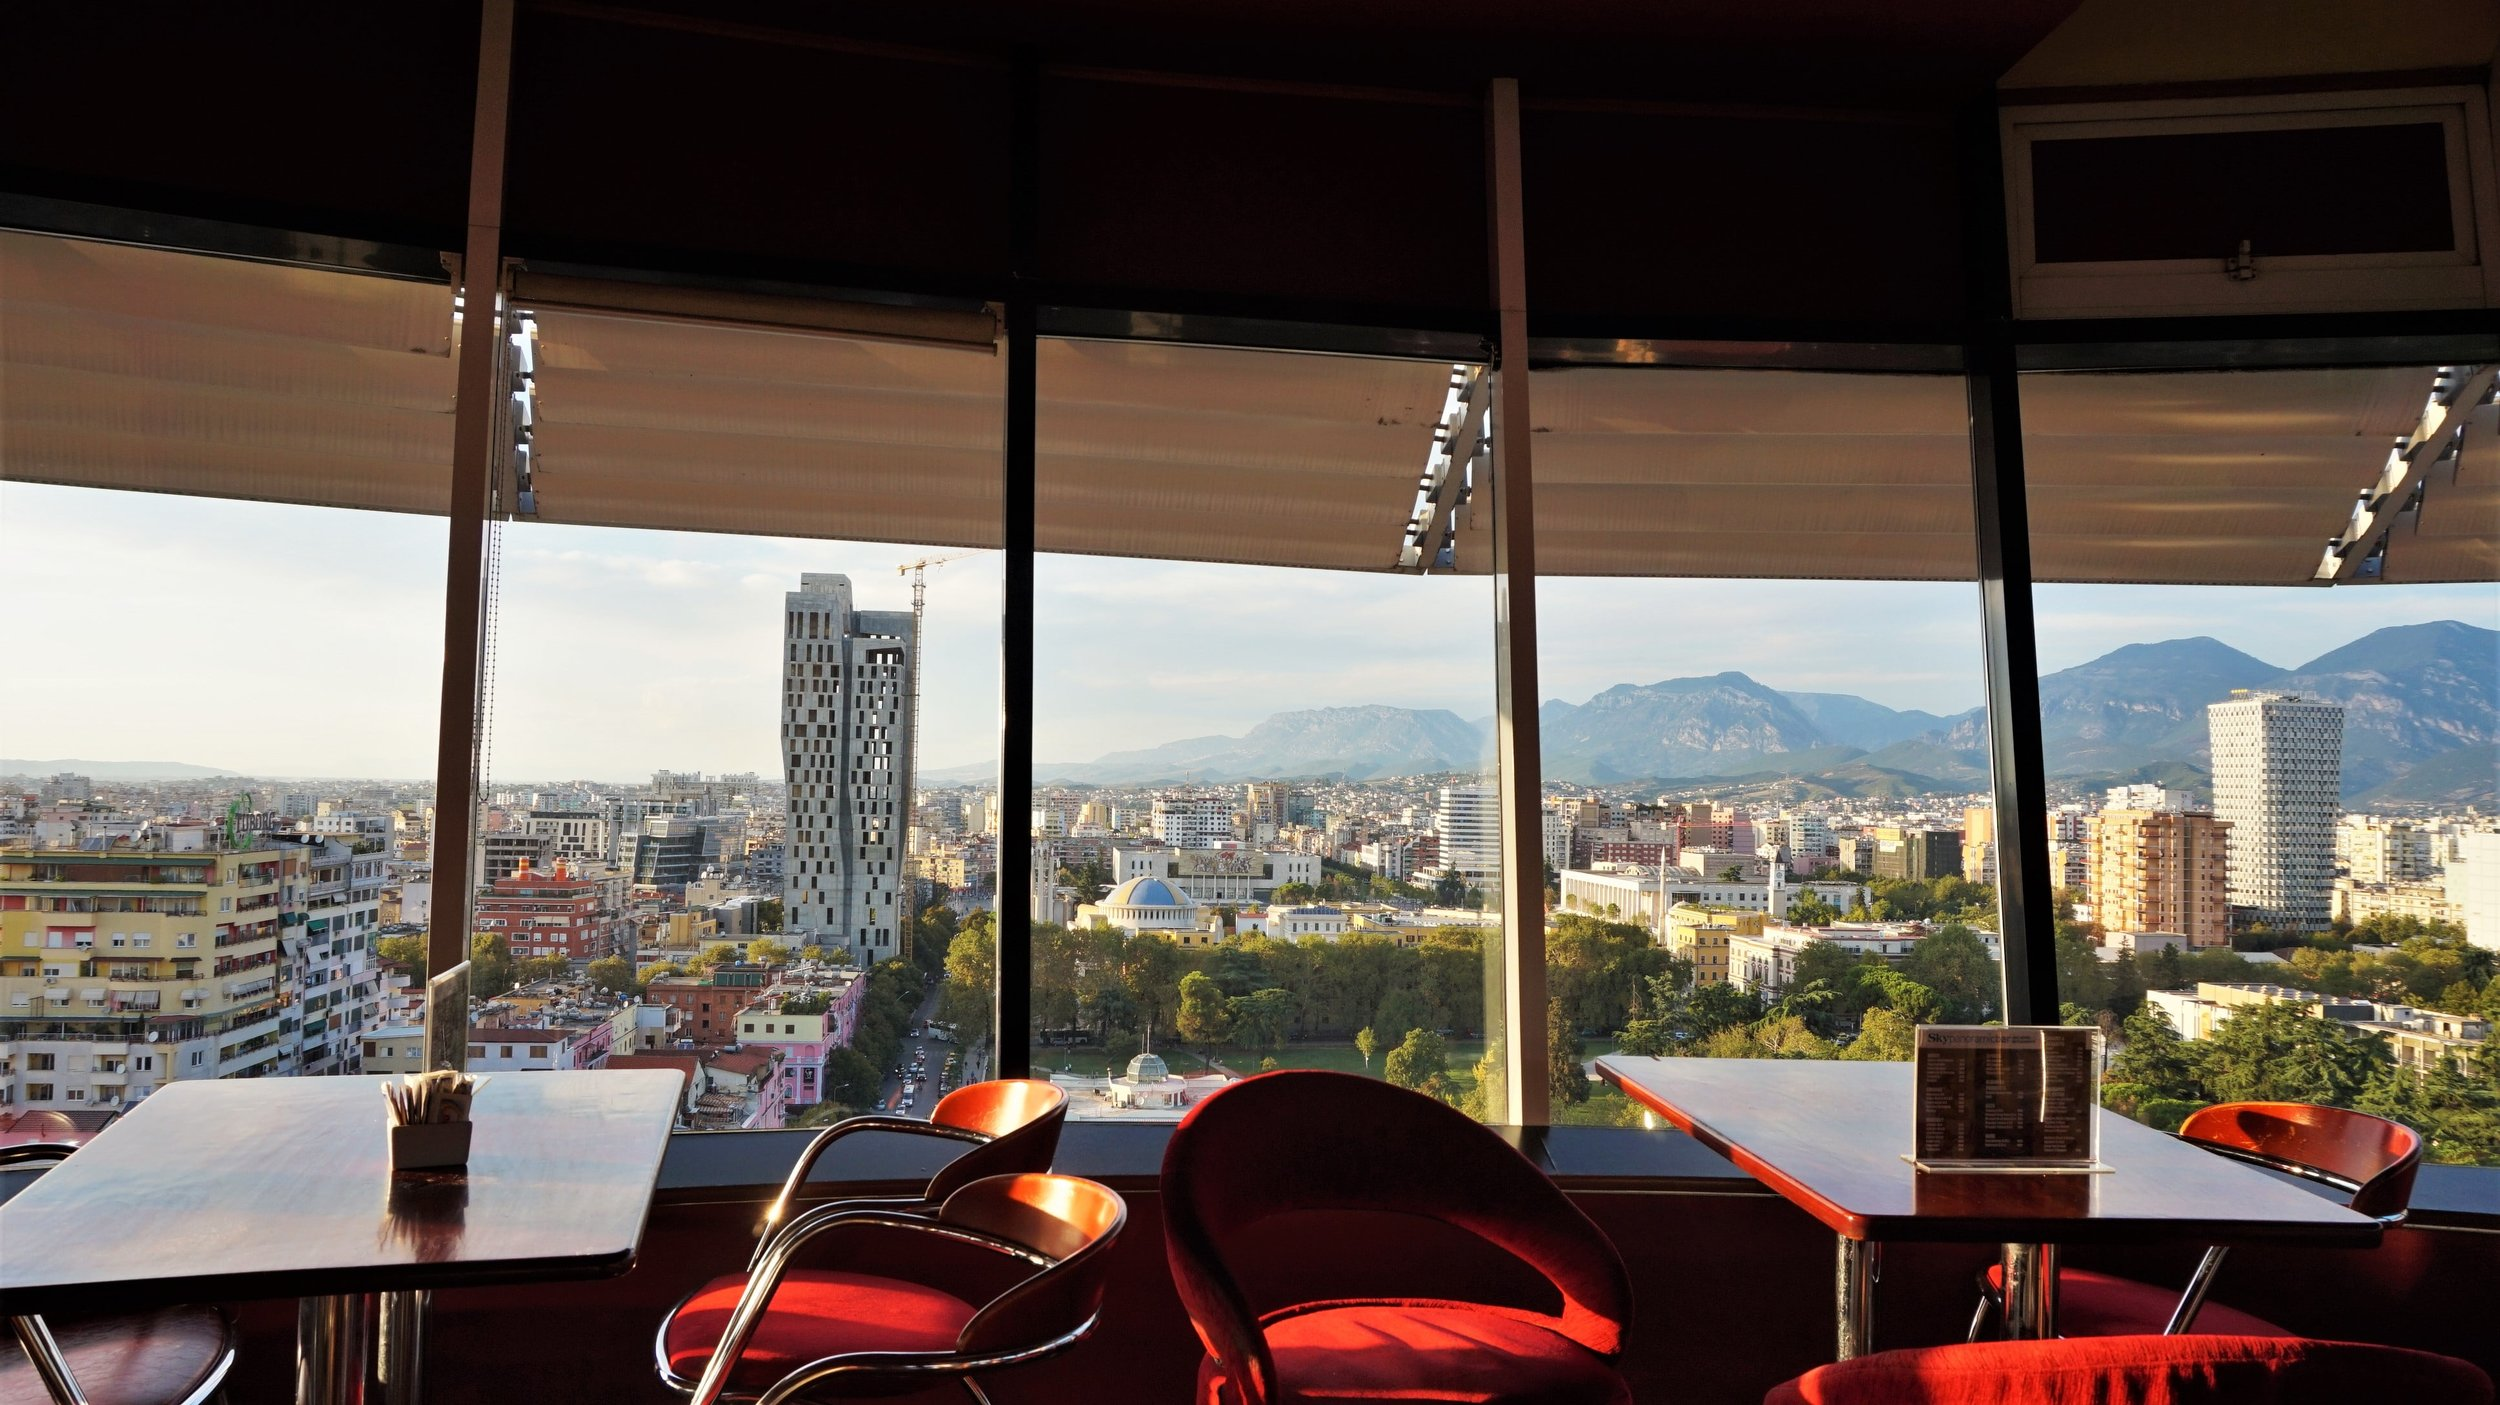 The views from the Sky Tower is definitely one of the best things to do in Tirana, Albania.